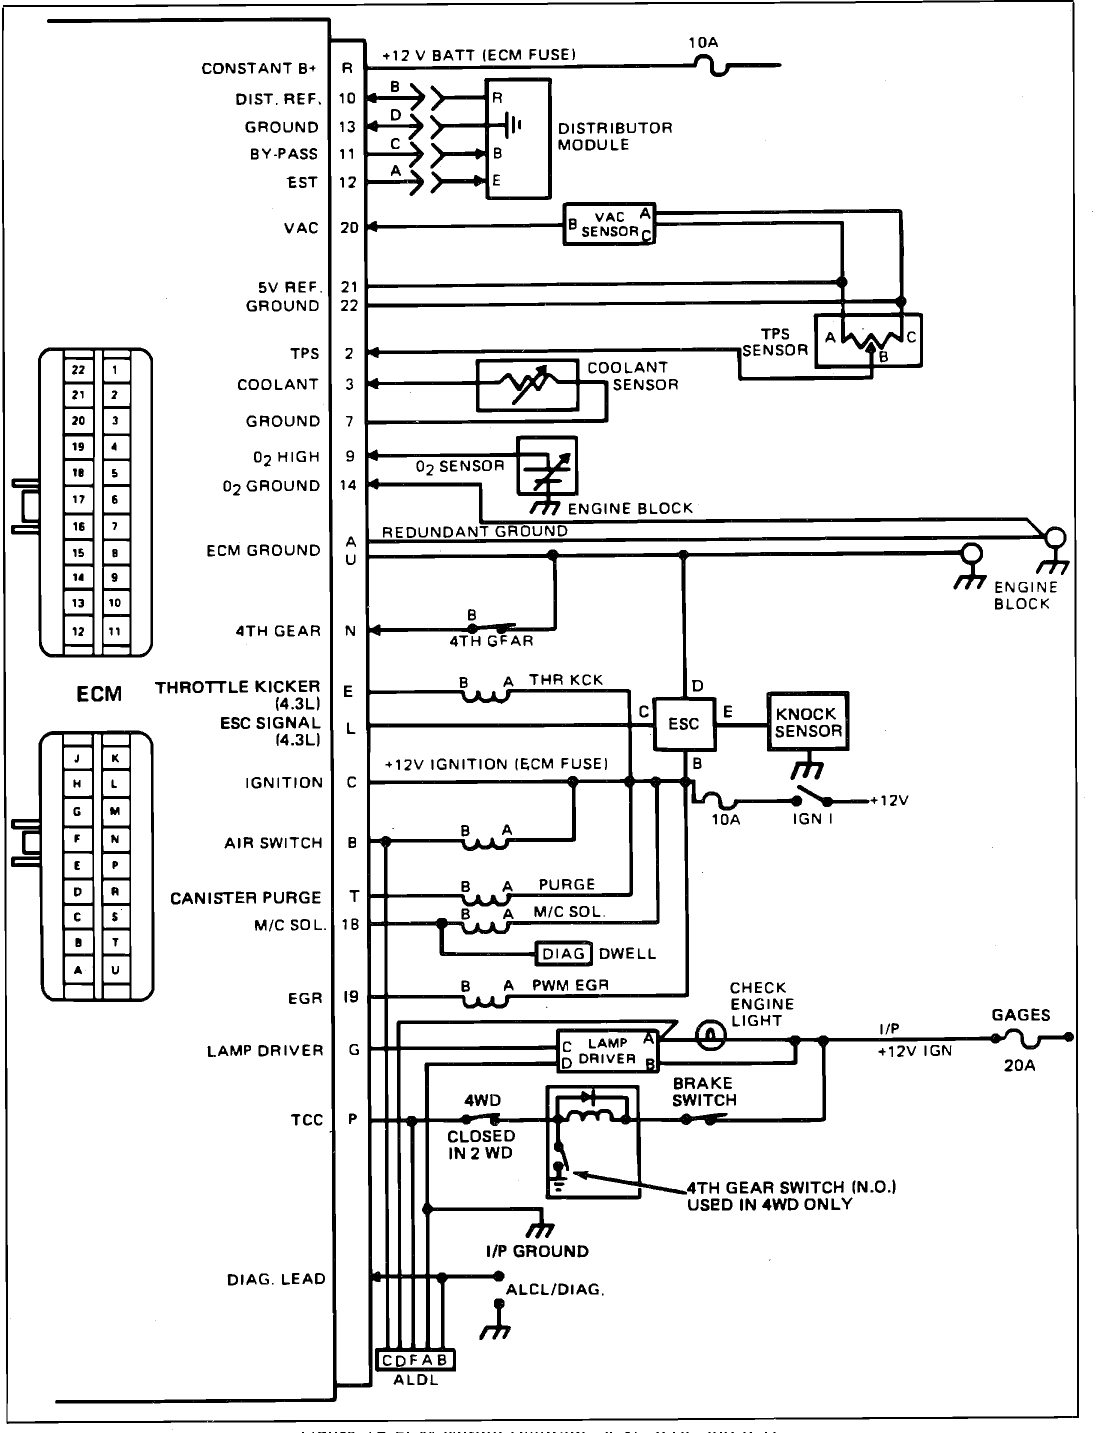 hight resolution of 1995 chevy g20 van fuse box diagram data wiring diagram 1994 chevy g20 fuse box diagram